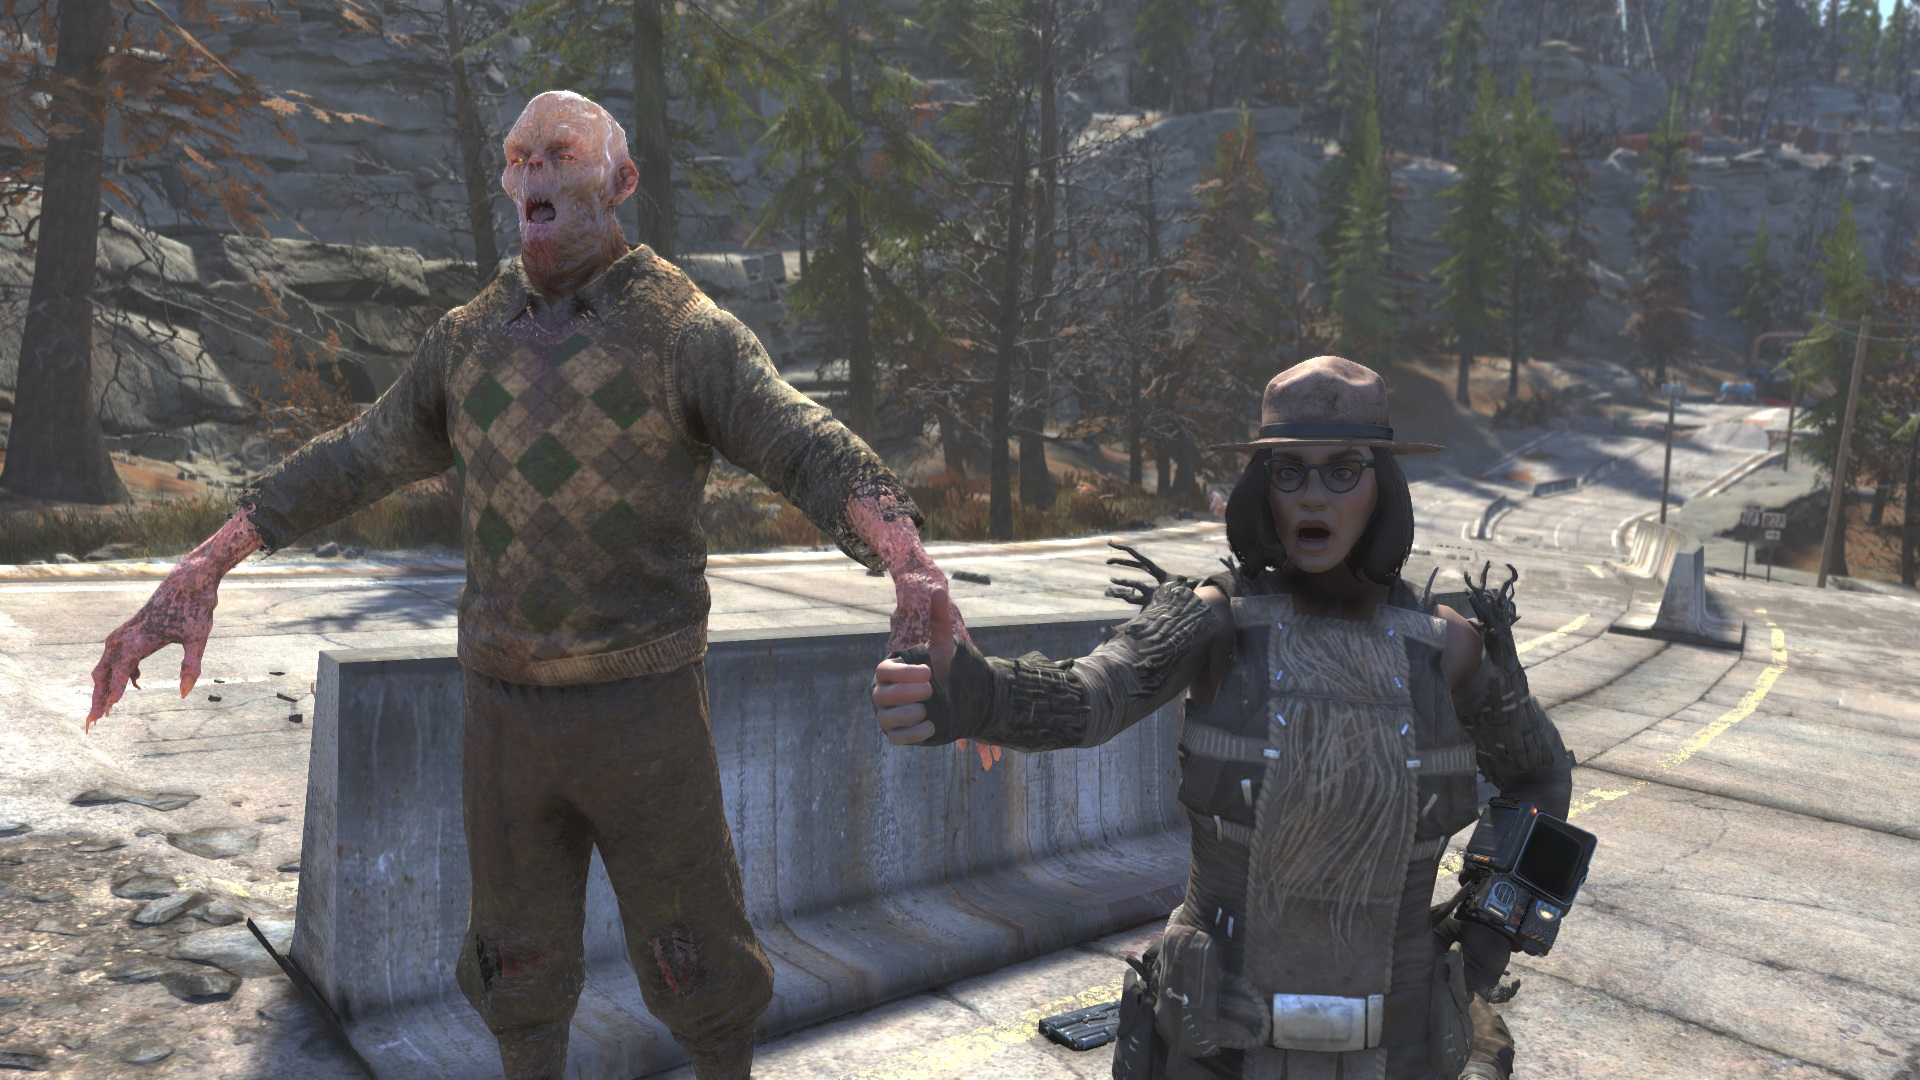 Fallout 76 PVP Guide - Pacifist Mode and How to Deal With Griefing